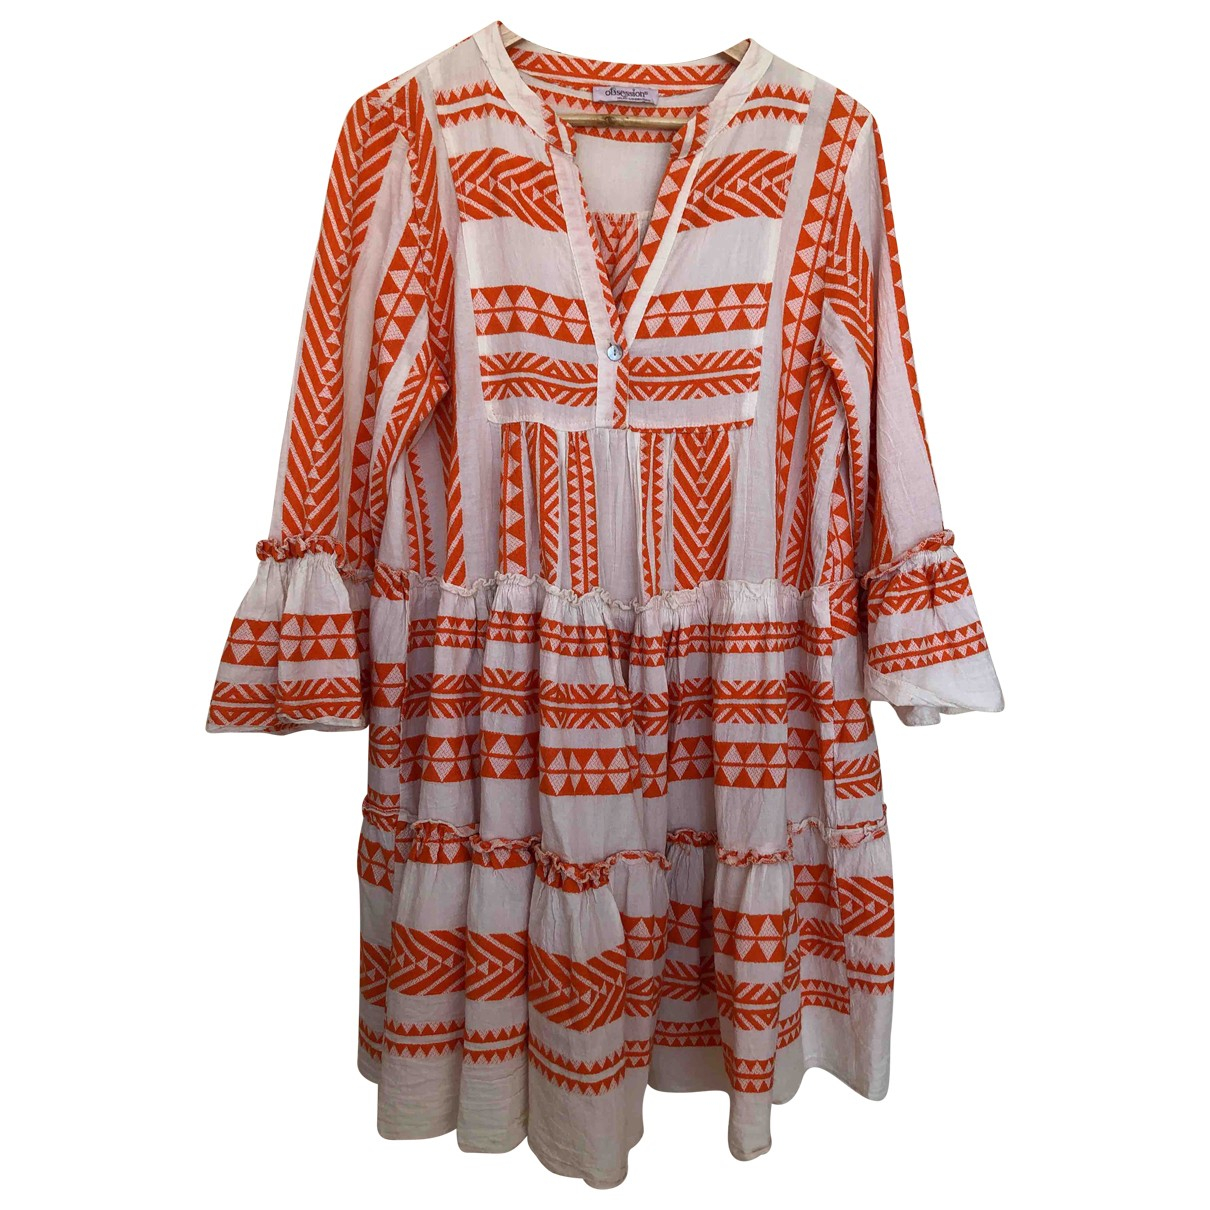 Non Signé / Unsigned Oversize Cotton dress for Women One Size 0-5